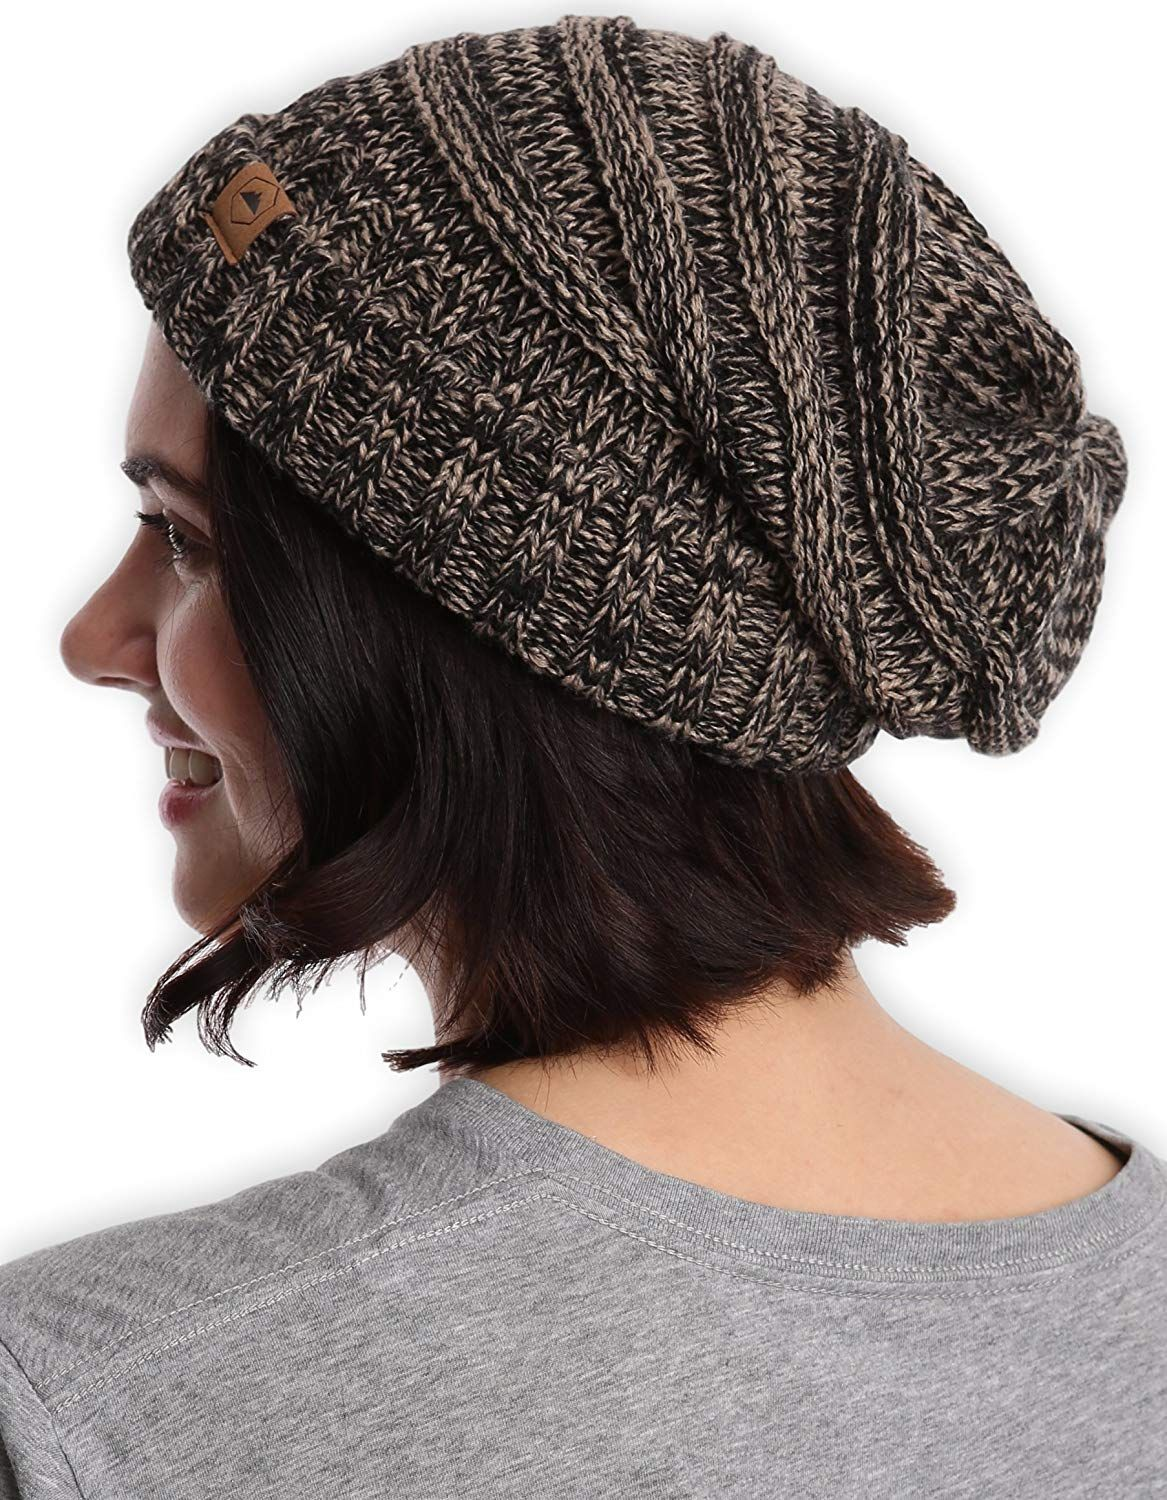 3b91218d8 Details about Slouchy Cable Knit Cuff Beanie Men Women Fashionable ...